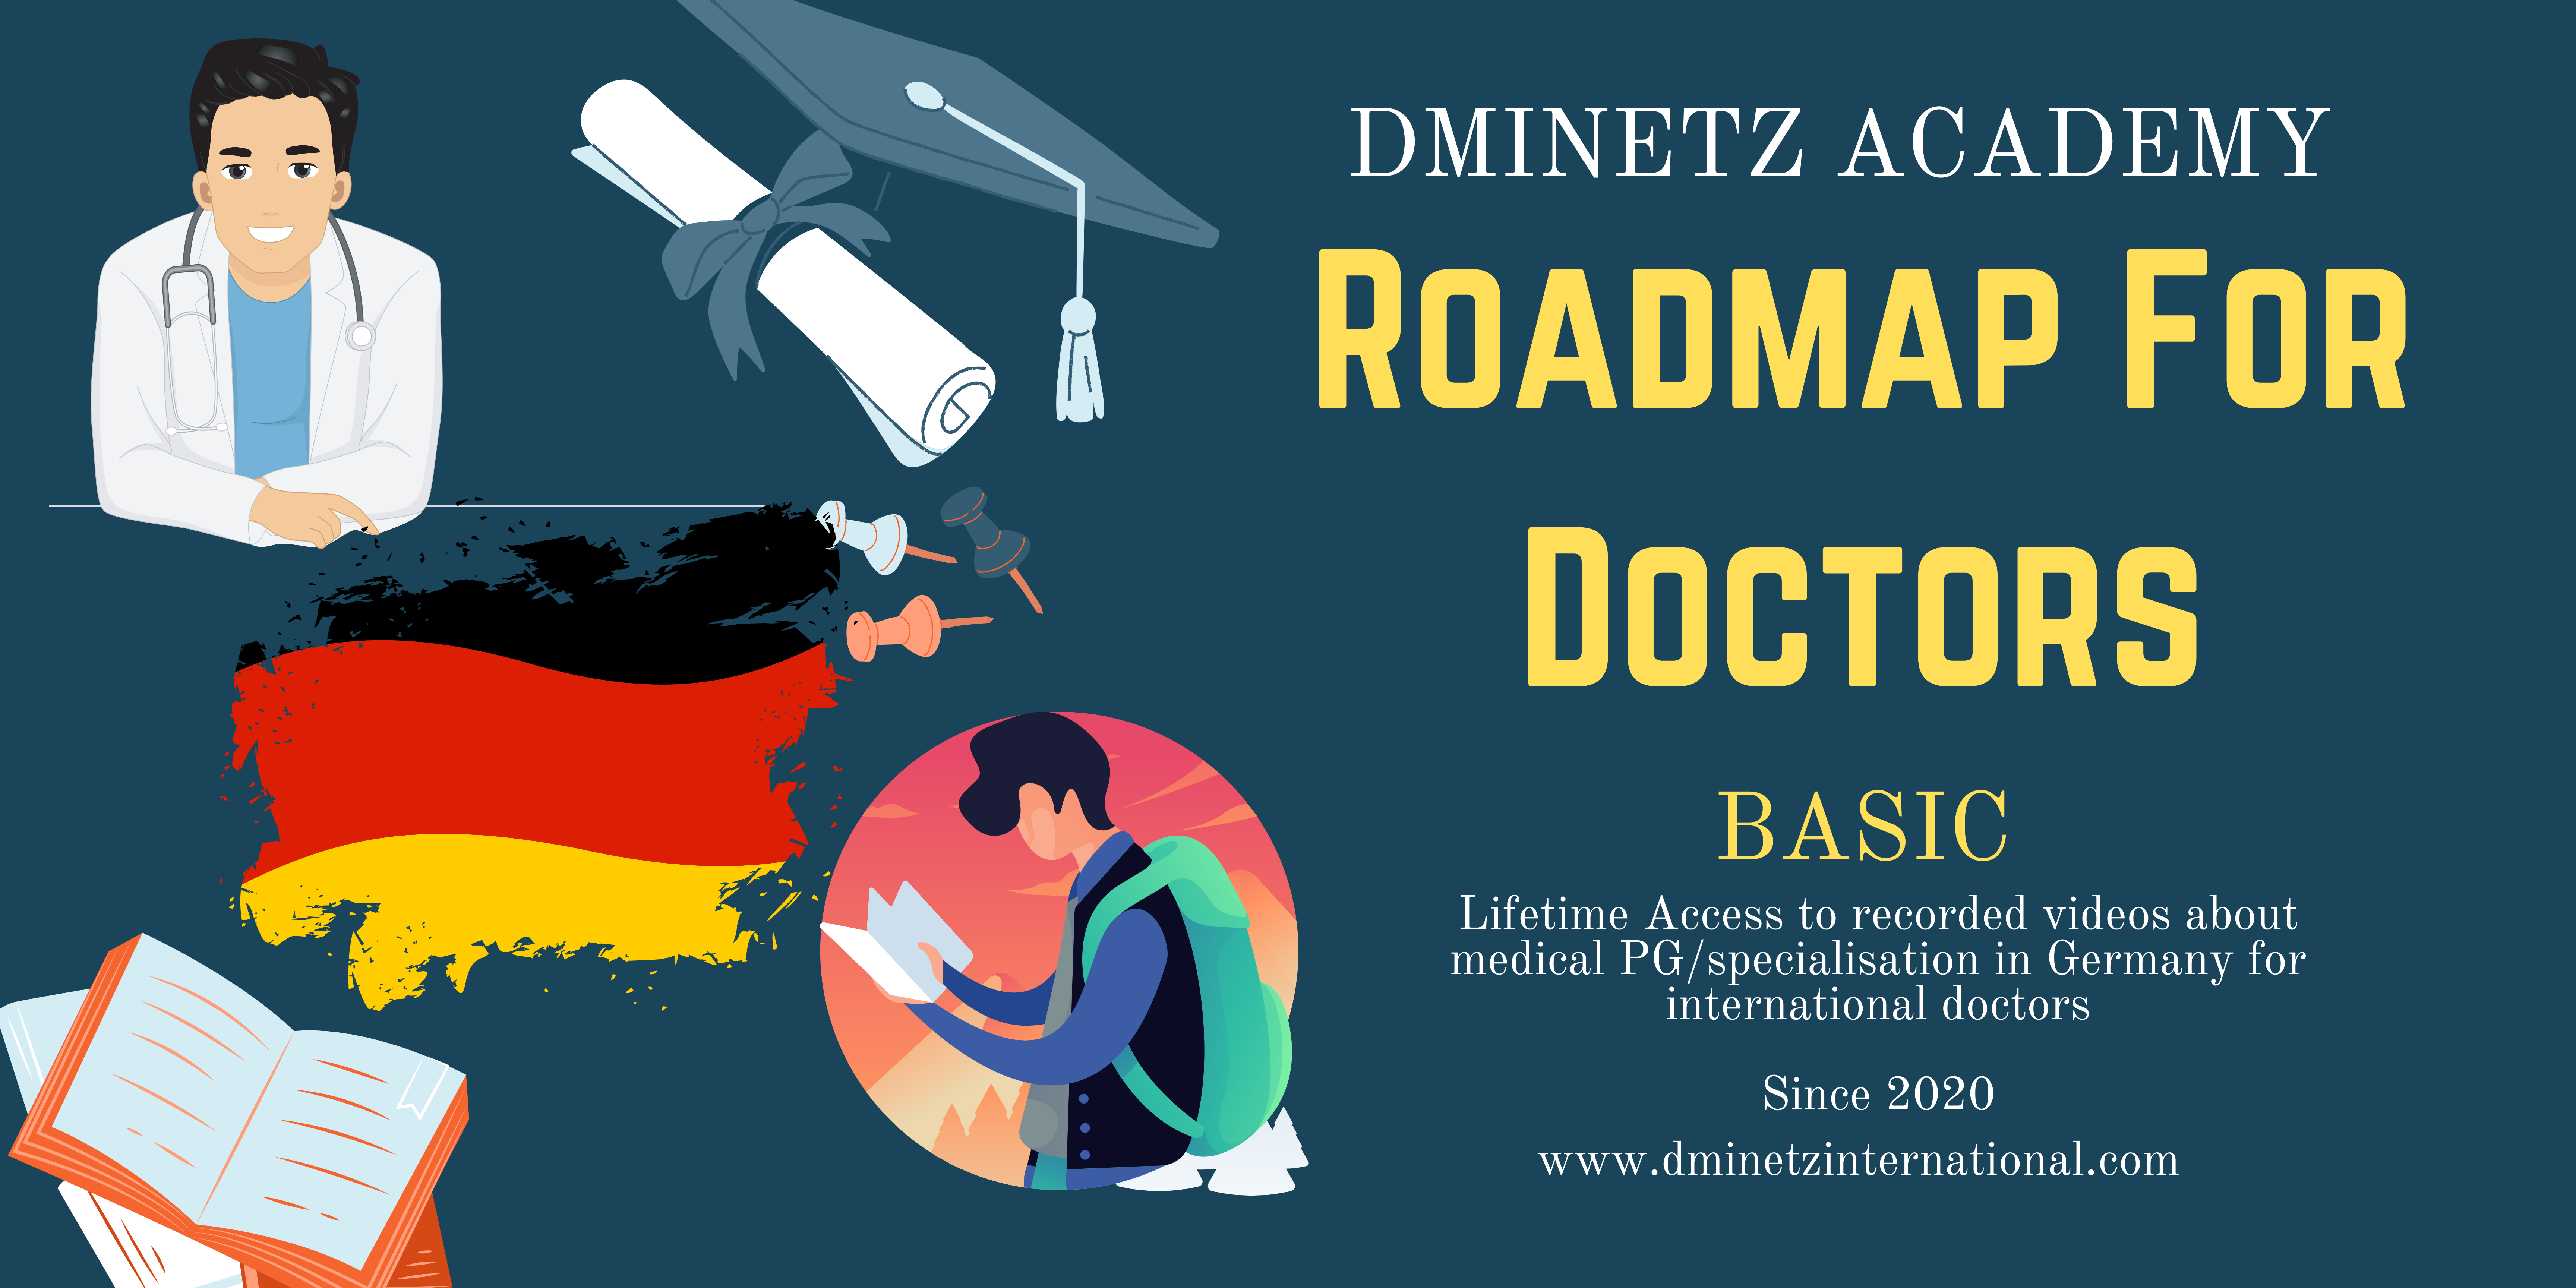 Roadmap for Doctors coming to Germany